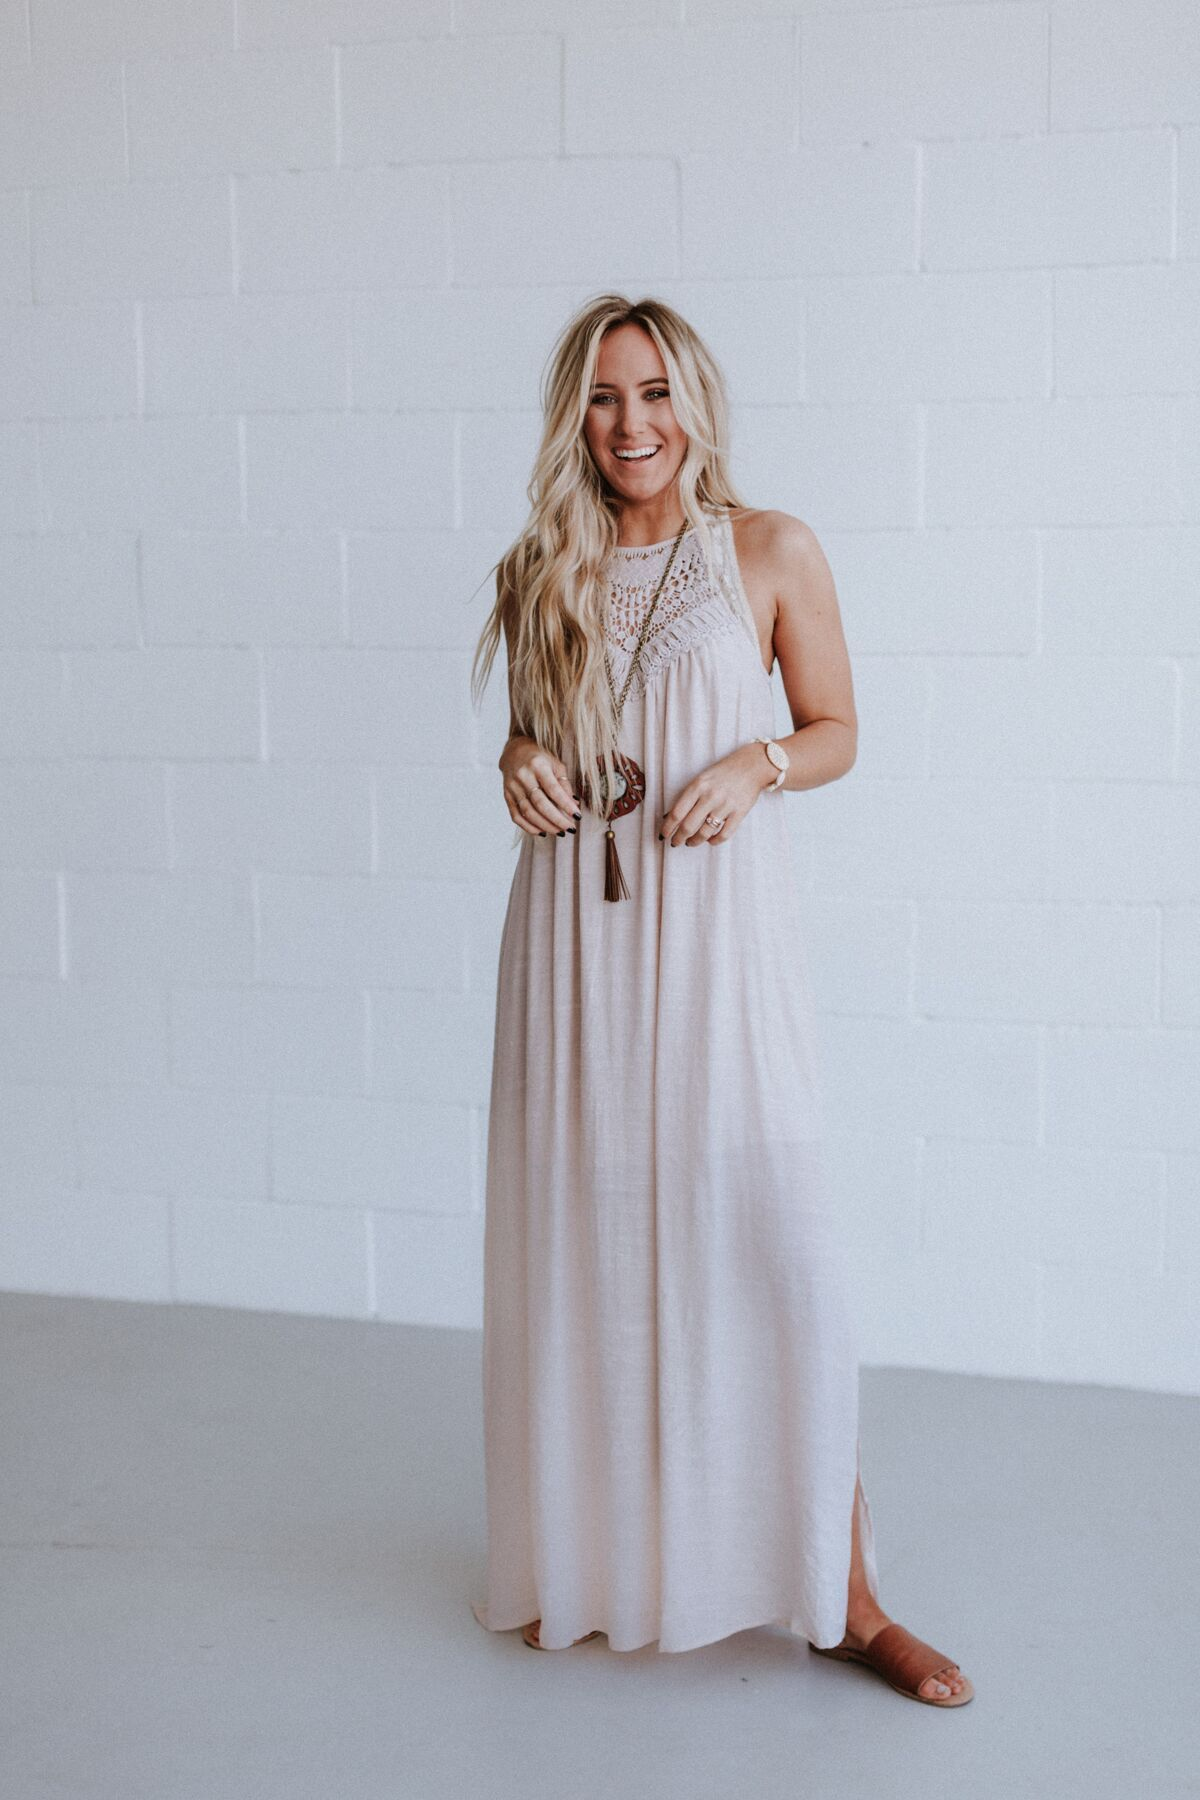 a30e9c05525 ... on sunny days in this airy lightweight lace motif halter maxi dress.  This dress is partially lined with high side slits and button loop keyhole  back.